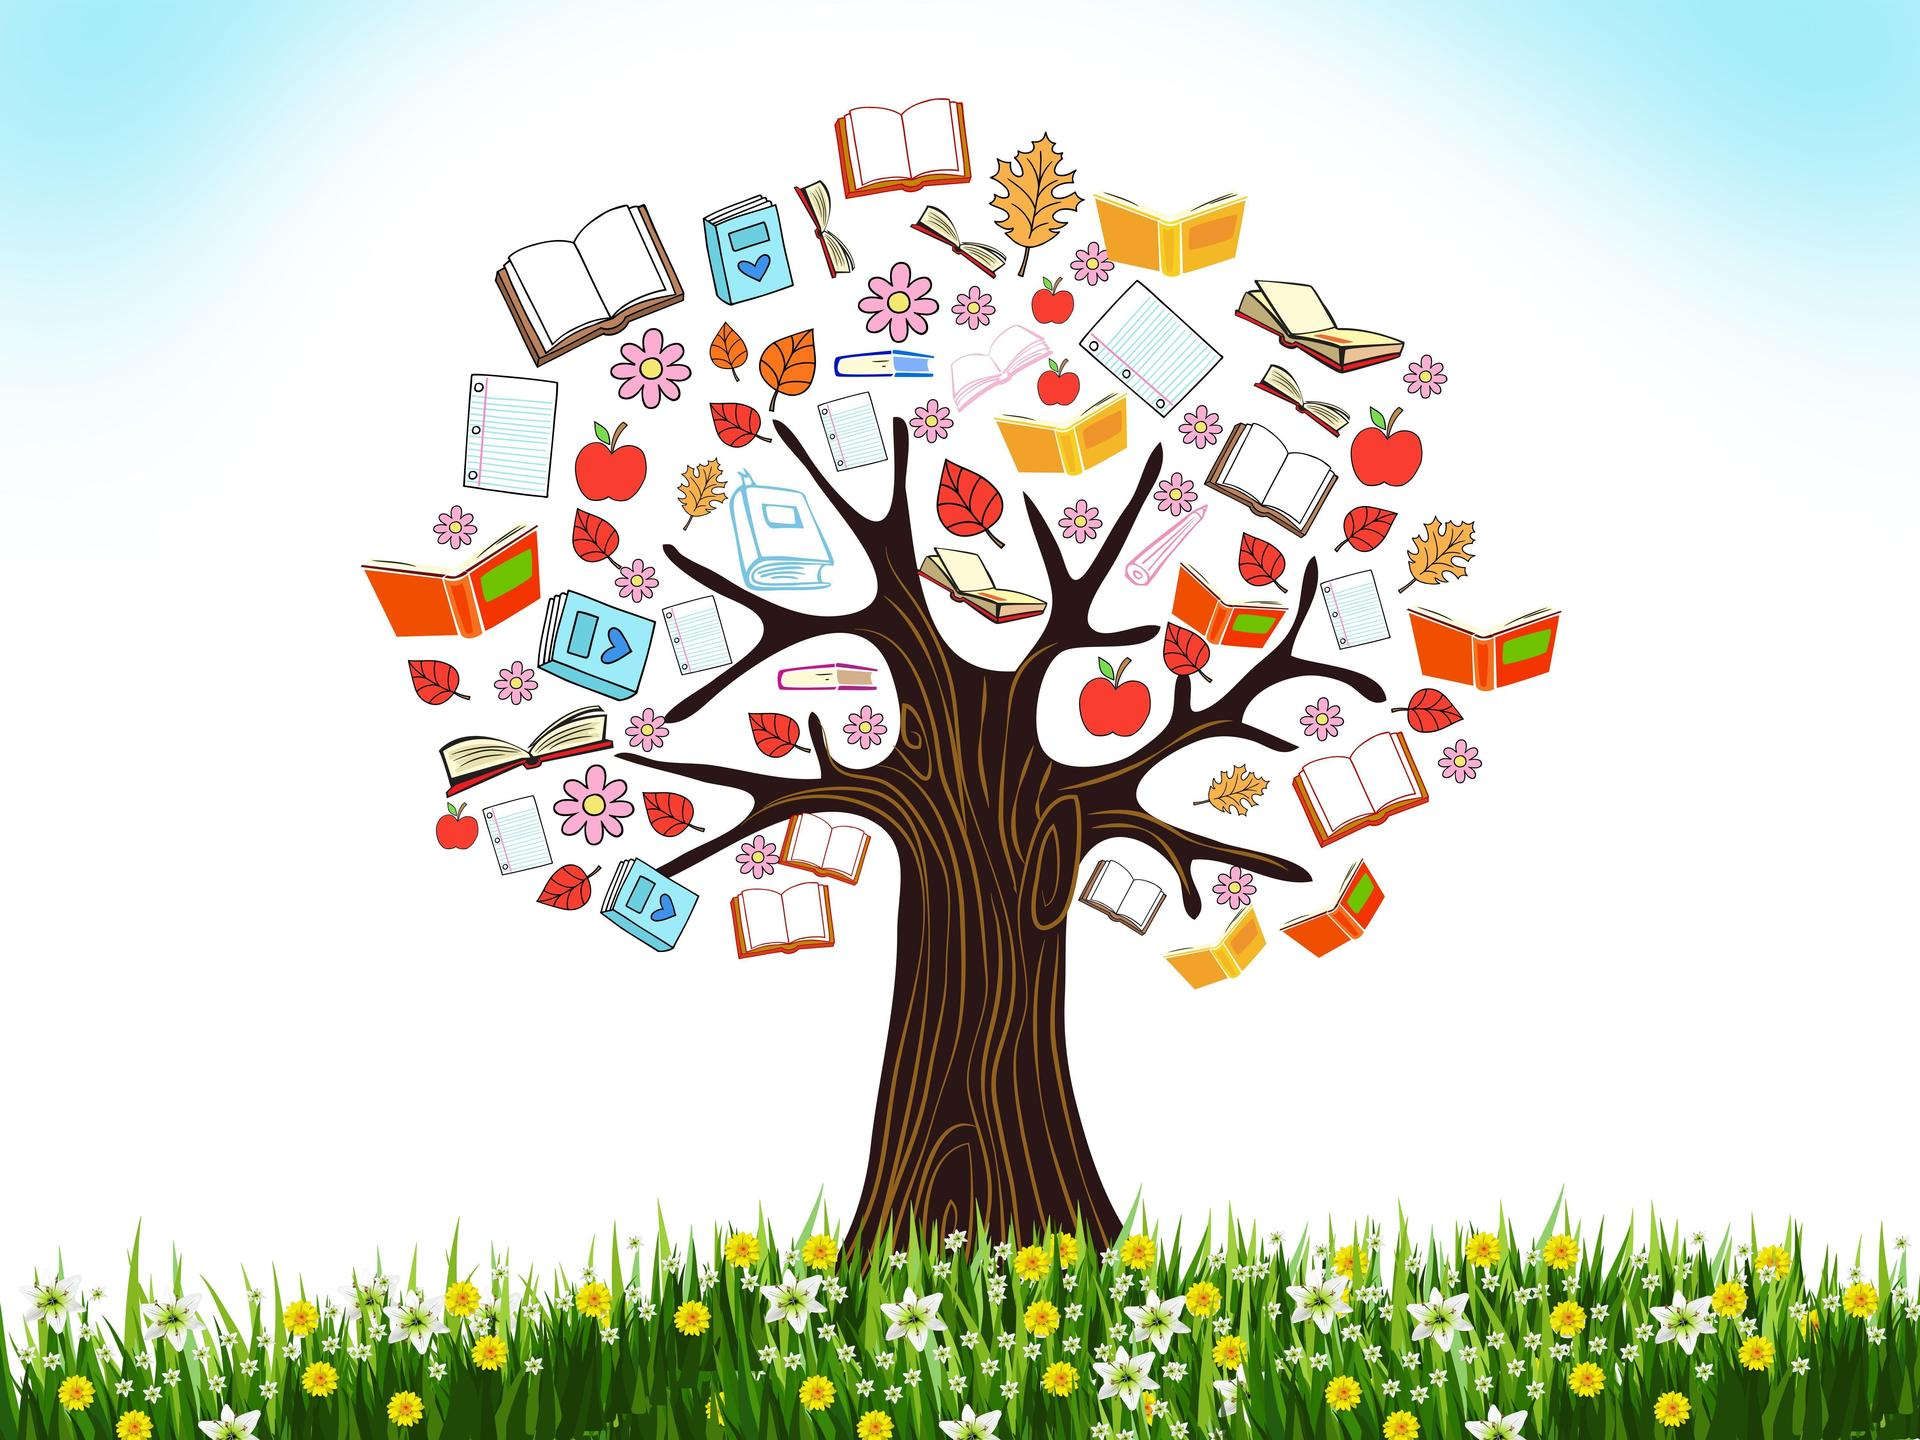 Tree with education supplies in branches